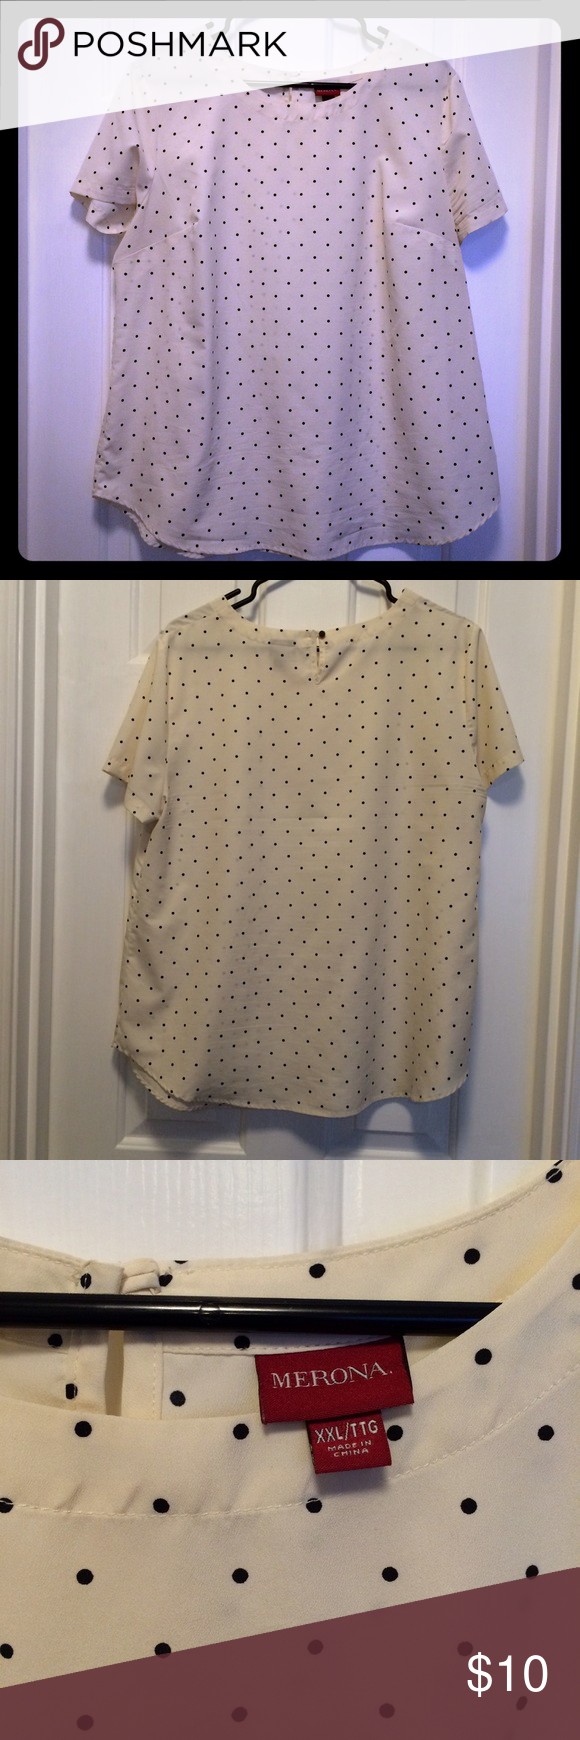 Merona Polka Dot Blouse Cream and Black Size XXL This top is in excellent condition. I think it fits a little tight in the shoulders, but it's an XXL. Fits size XL or 14-16. It's slightly off-white (intentionally, not discolored), kind of cream, with black small polka dots. Merona Tops Blouses